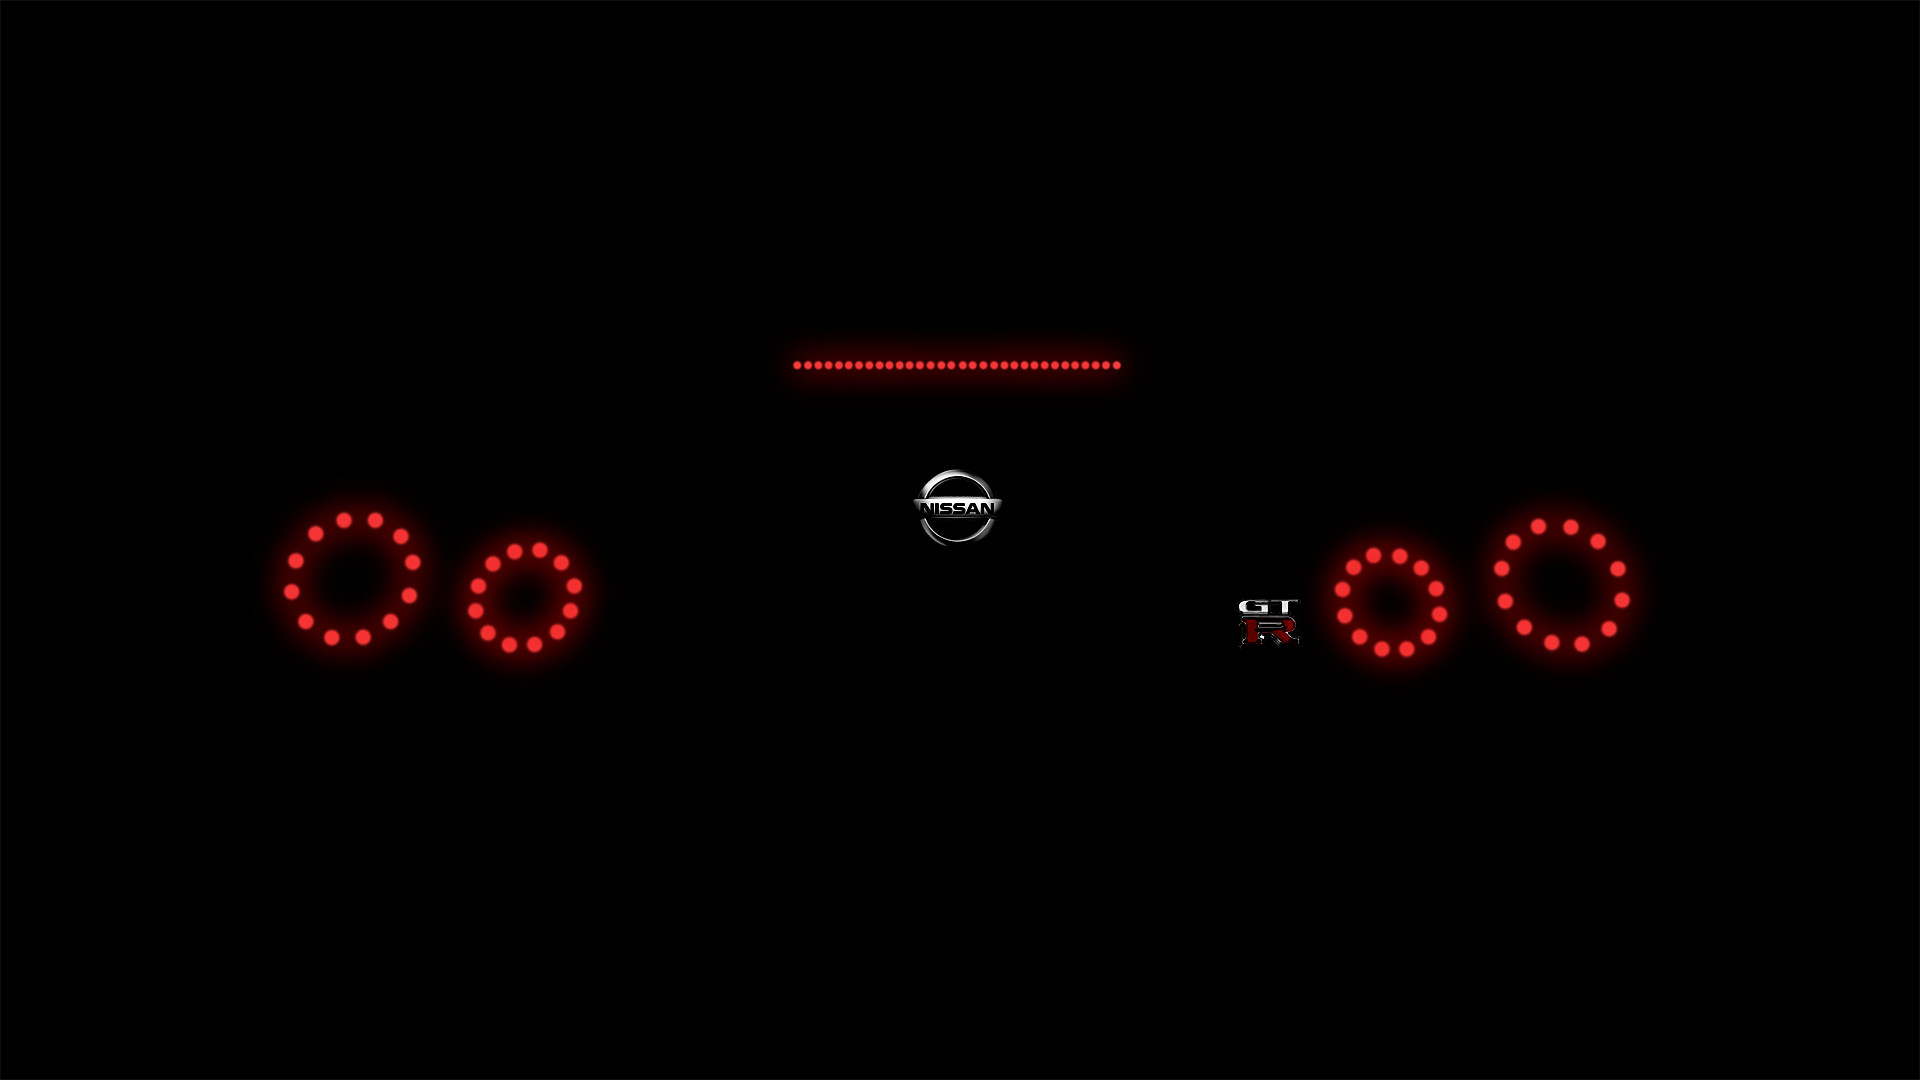 Nissan Titan Tail Light Wiring Diagram further 03 Nissan Sentra Engine Diagram as well 2010 Nissan Frontier Rear Engine  partment Fuse Box likewise Nissan Logo Wallpaper also 2019 Nissan Altima Changes And Price. on nissan maxima tail lights